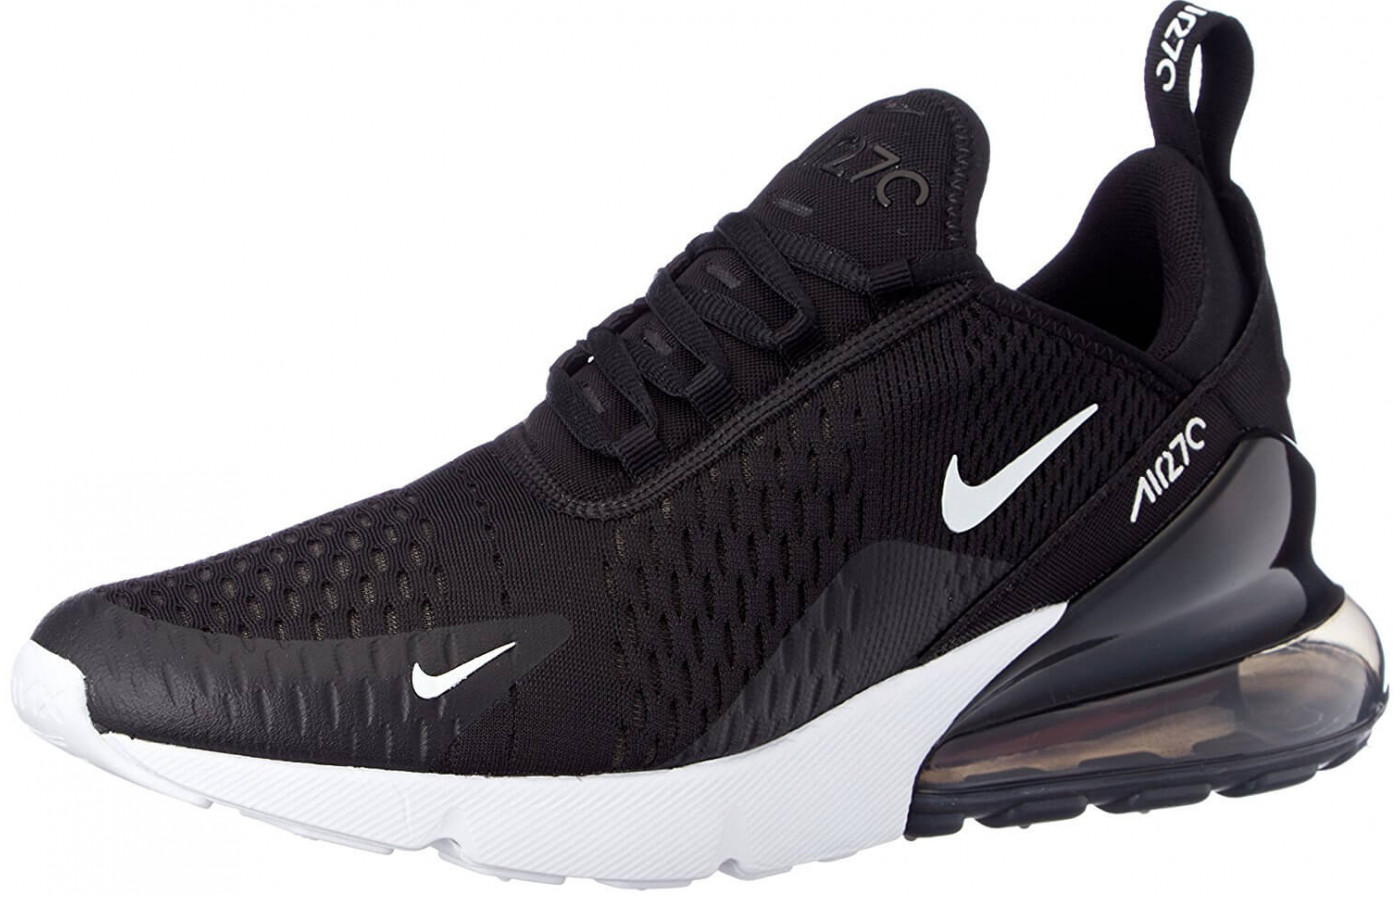 f8ea41806afd Nike Air Max 270. Mesh upper and 270 degrees of Air ...